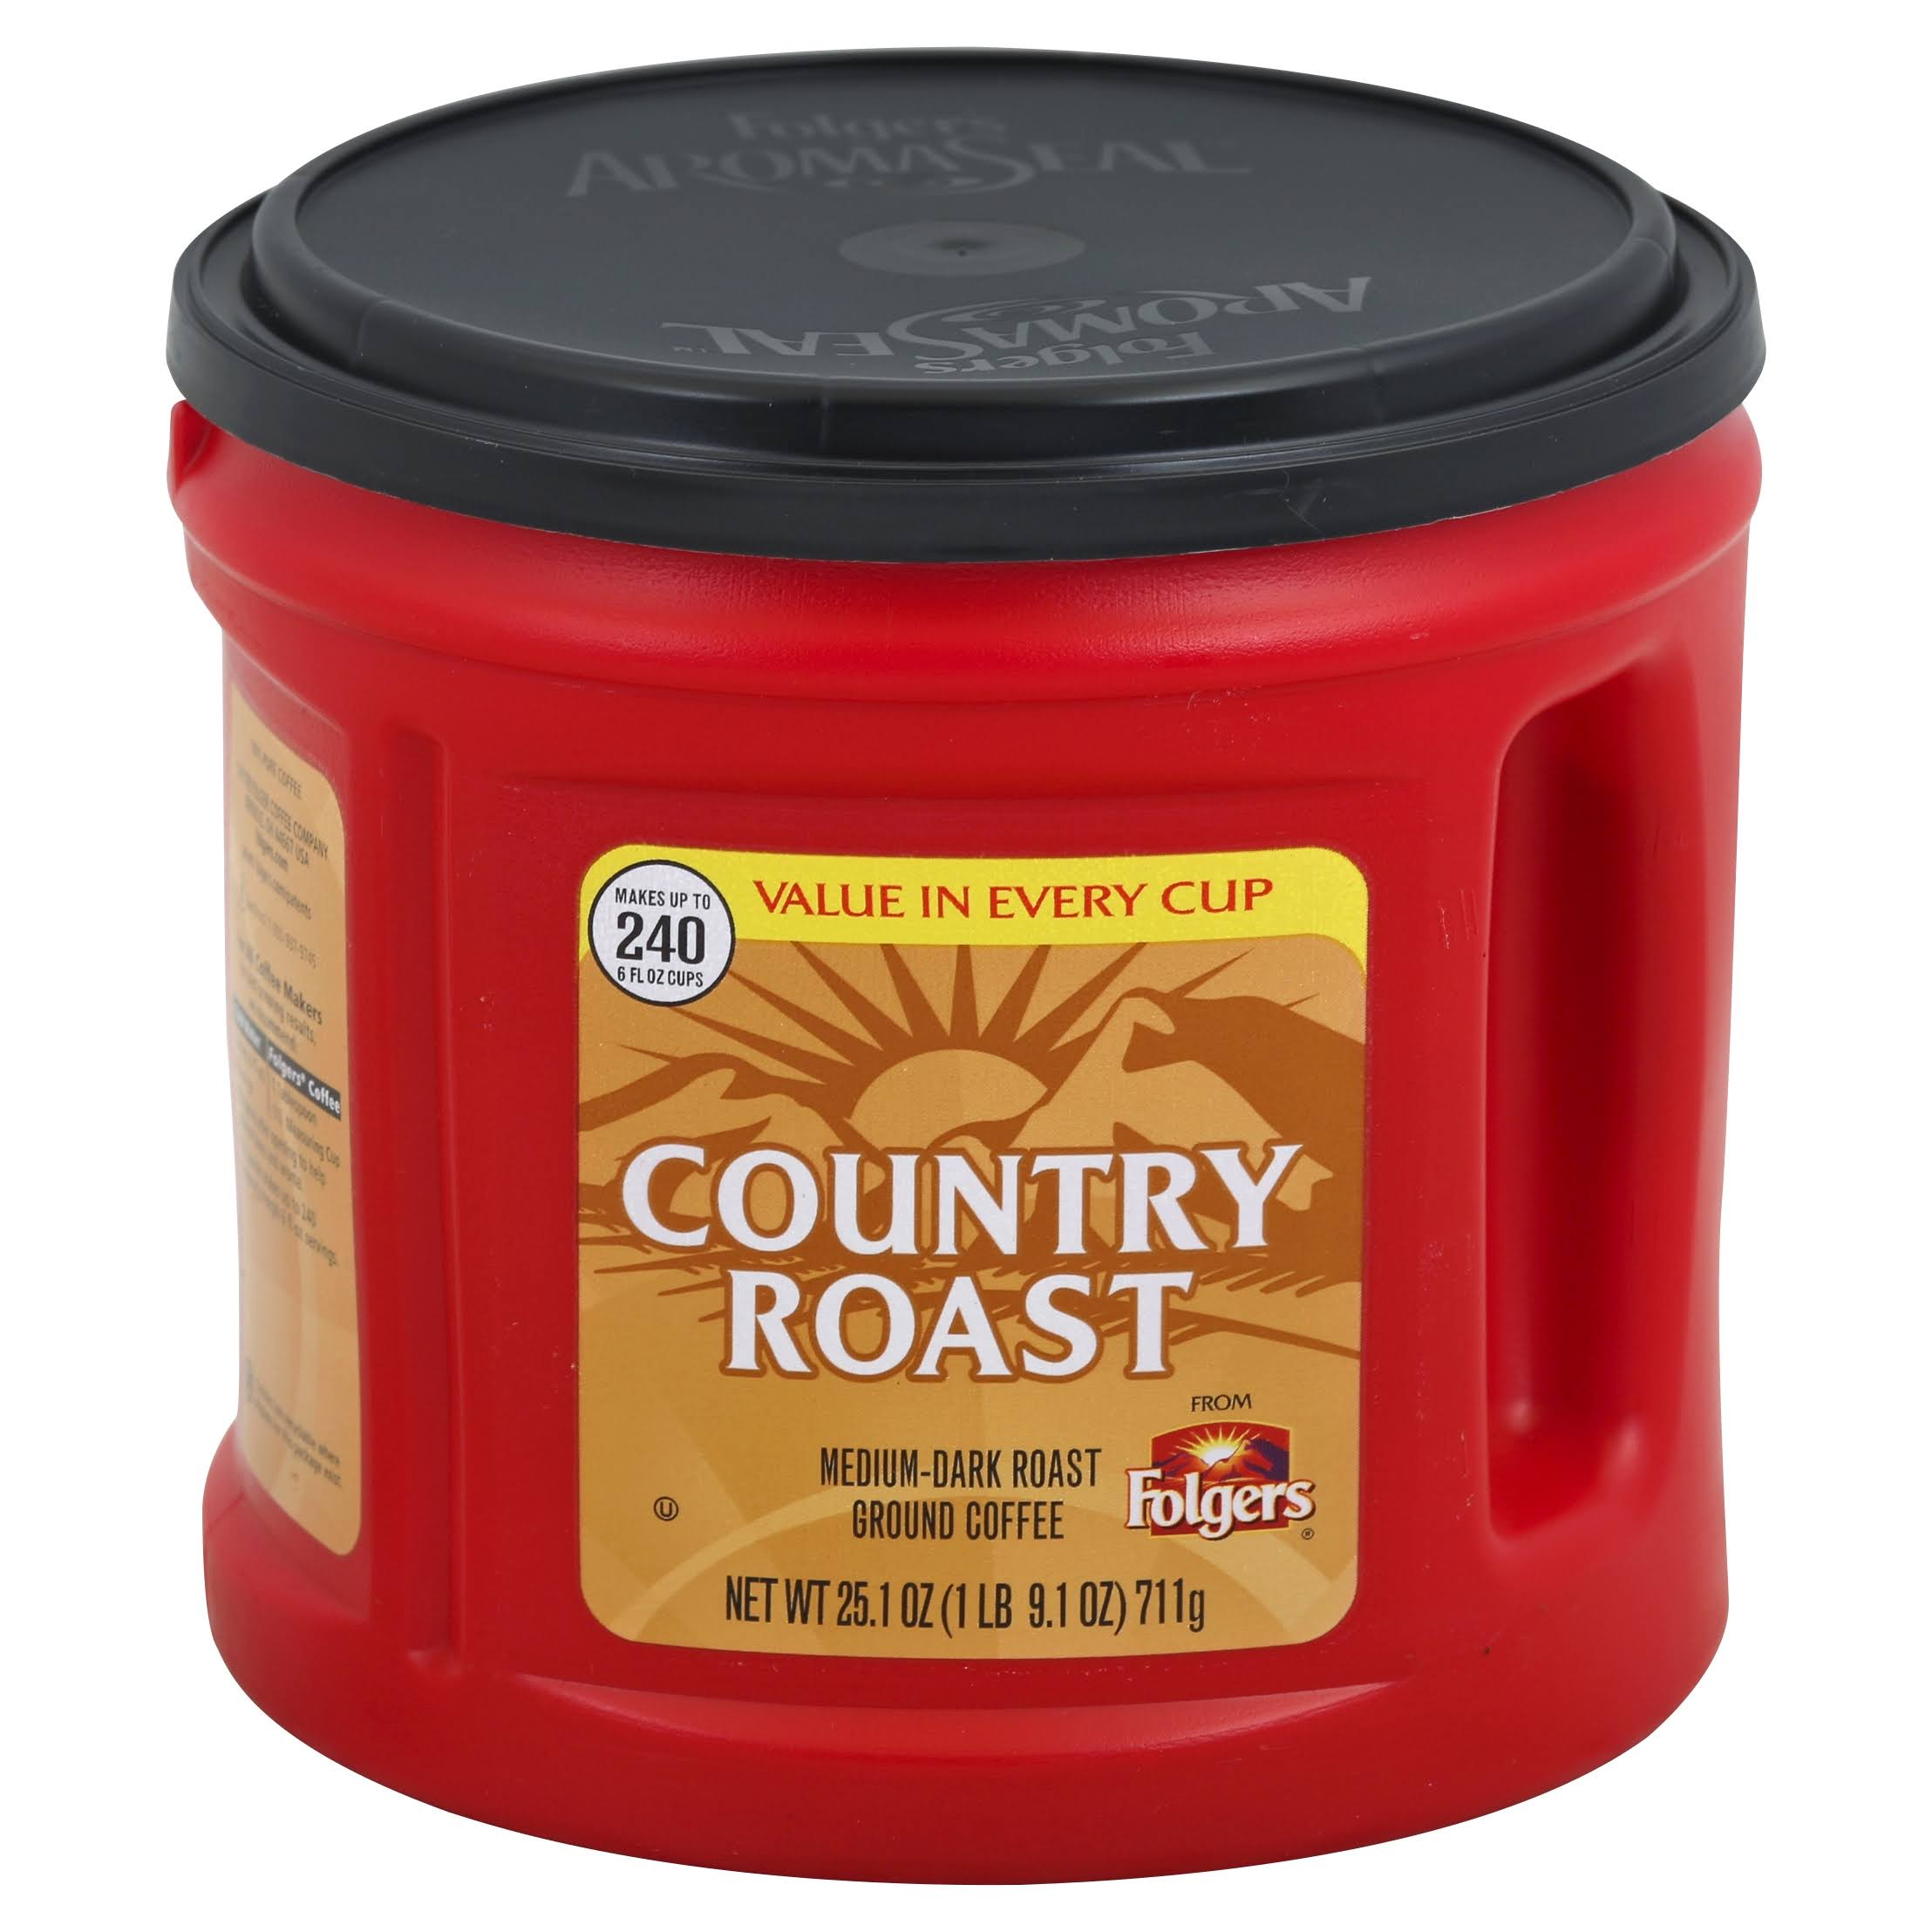 Folgers Country Roast Ground Coffee - 25.1oz